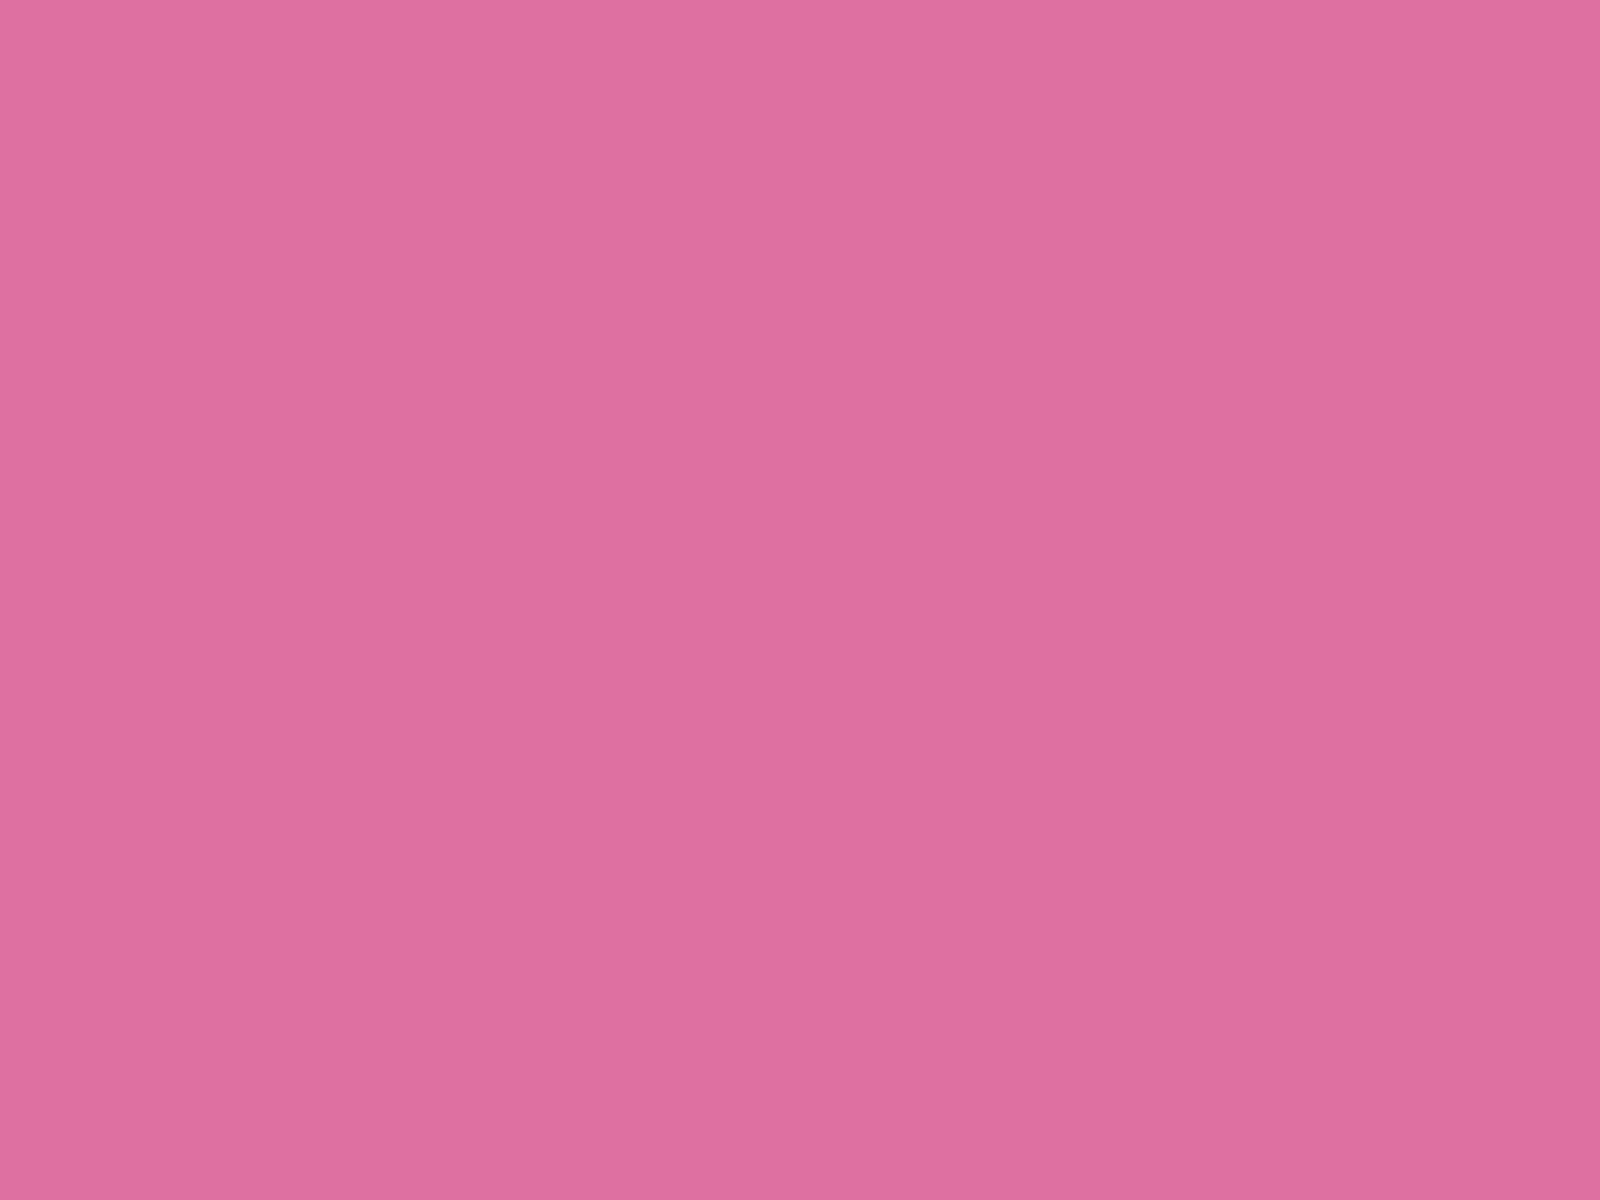 1600x1200 China Pink Solid Color Background